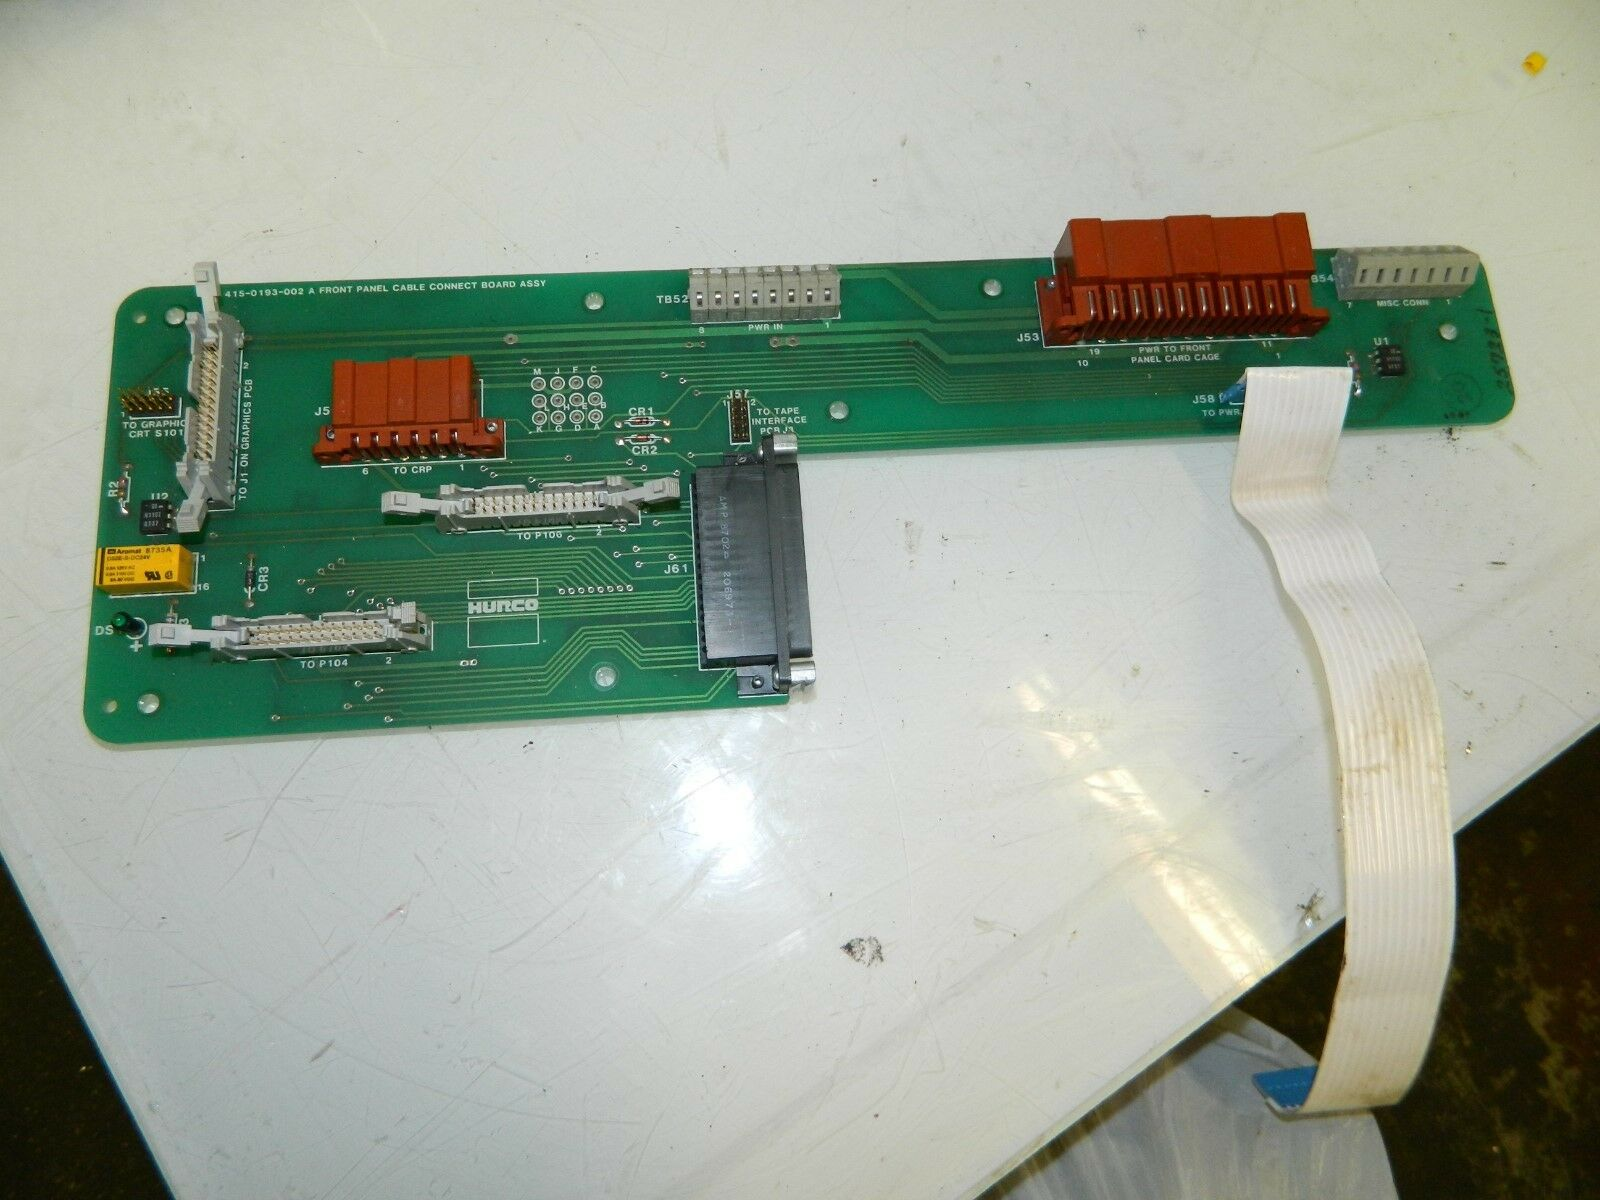 Hurco Front Panel Cable CNC PC Board 415-0193-002 a | eBay